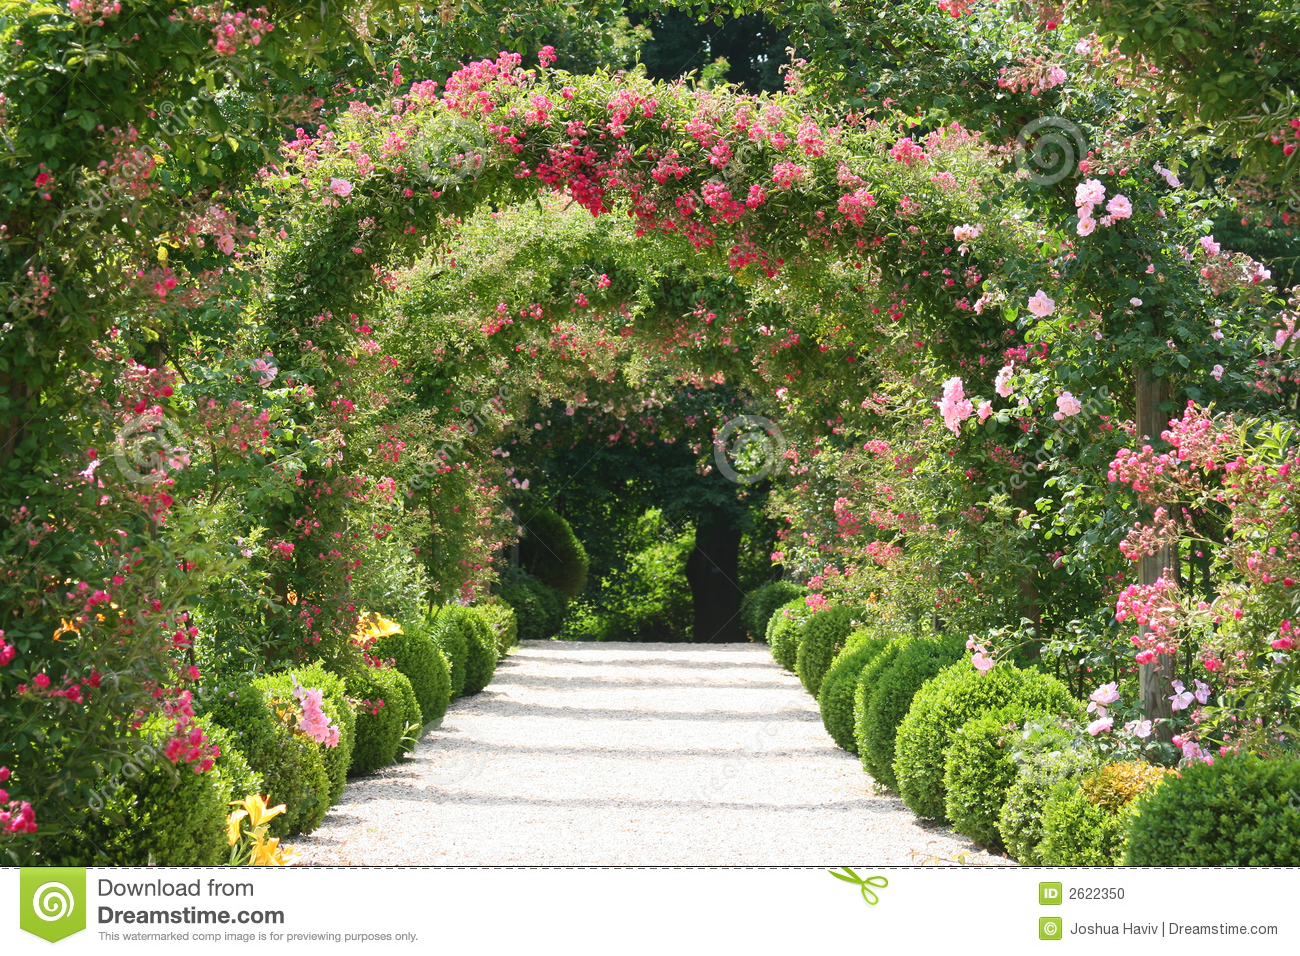 Garden Landscape rose garden landscape stock photo - image: 2622350